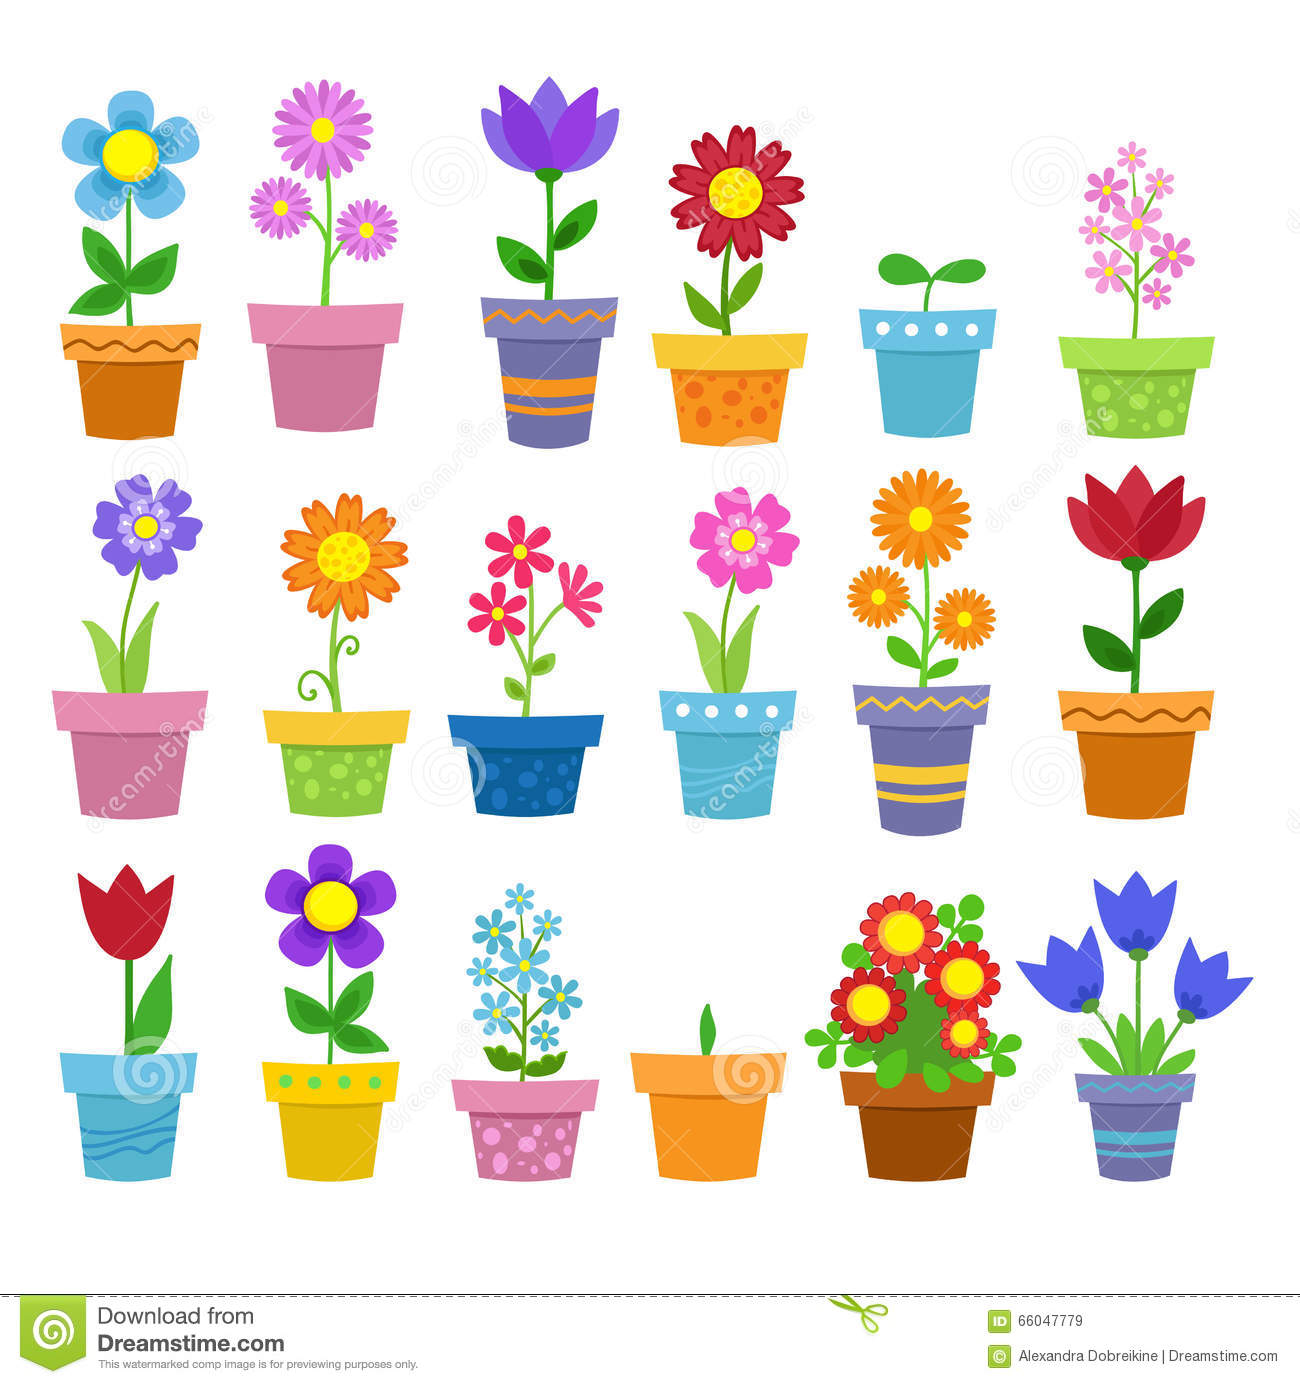 Clipart Blumen Stock Illustrationen, Vektors, & Klipart.